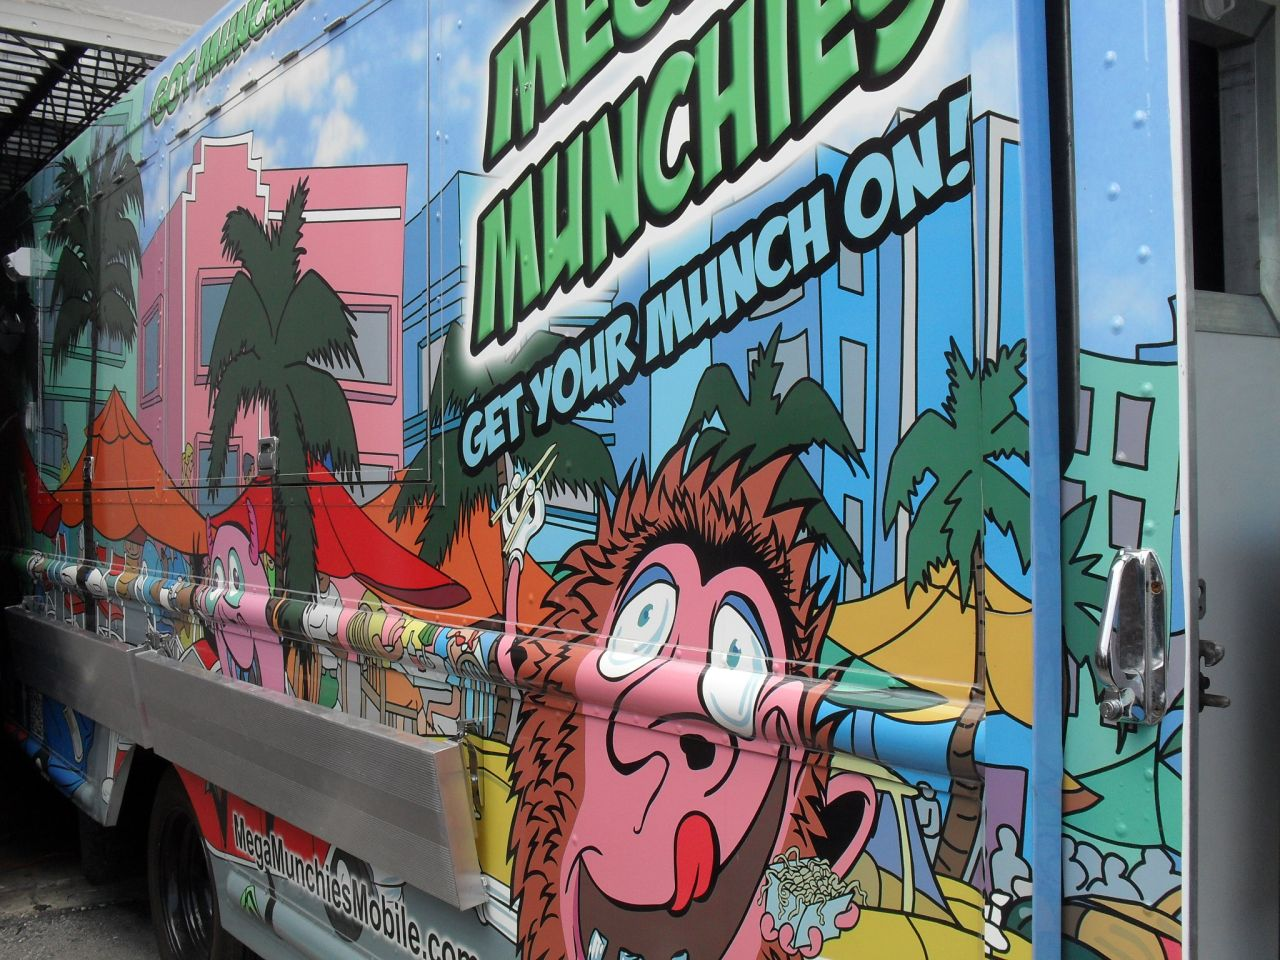 events and fun in south beach miami food truck night august 9. Black Bedroom Furniture Sets. Home Design Ideas